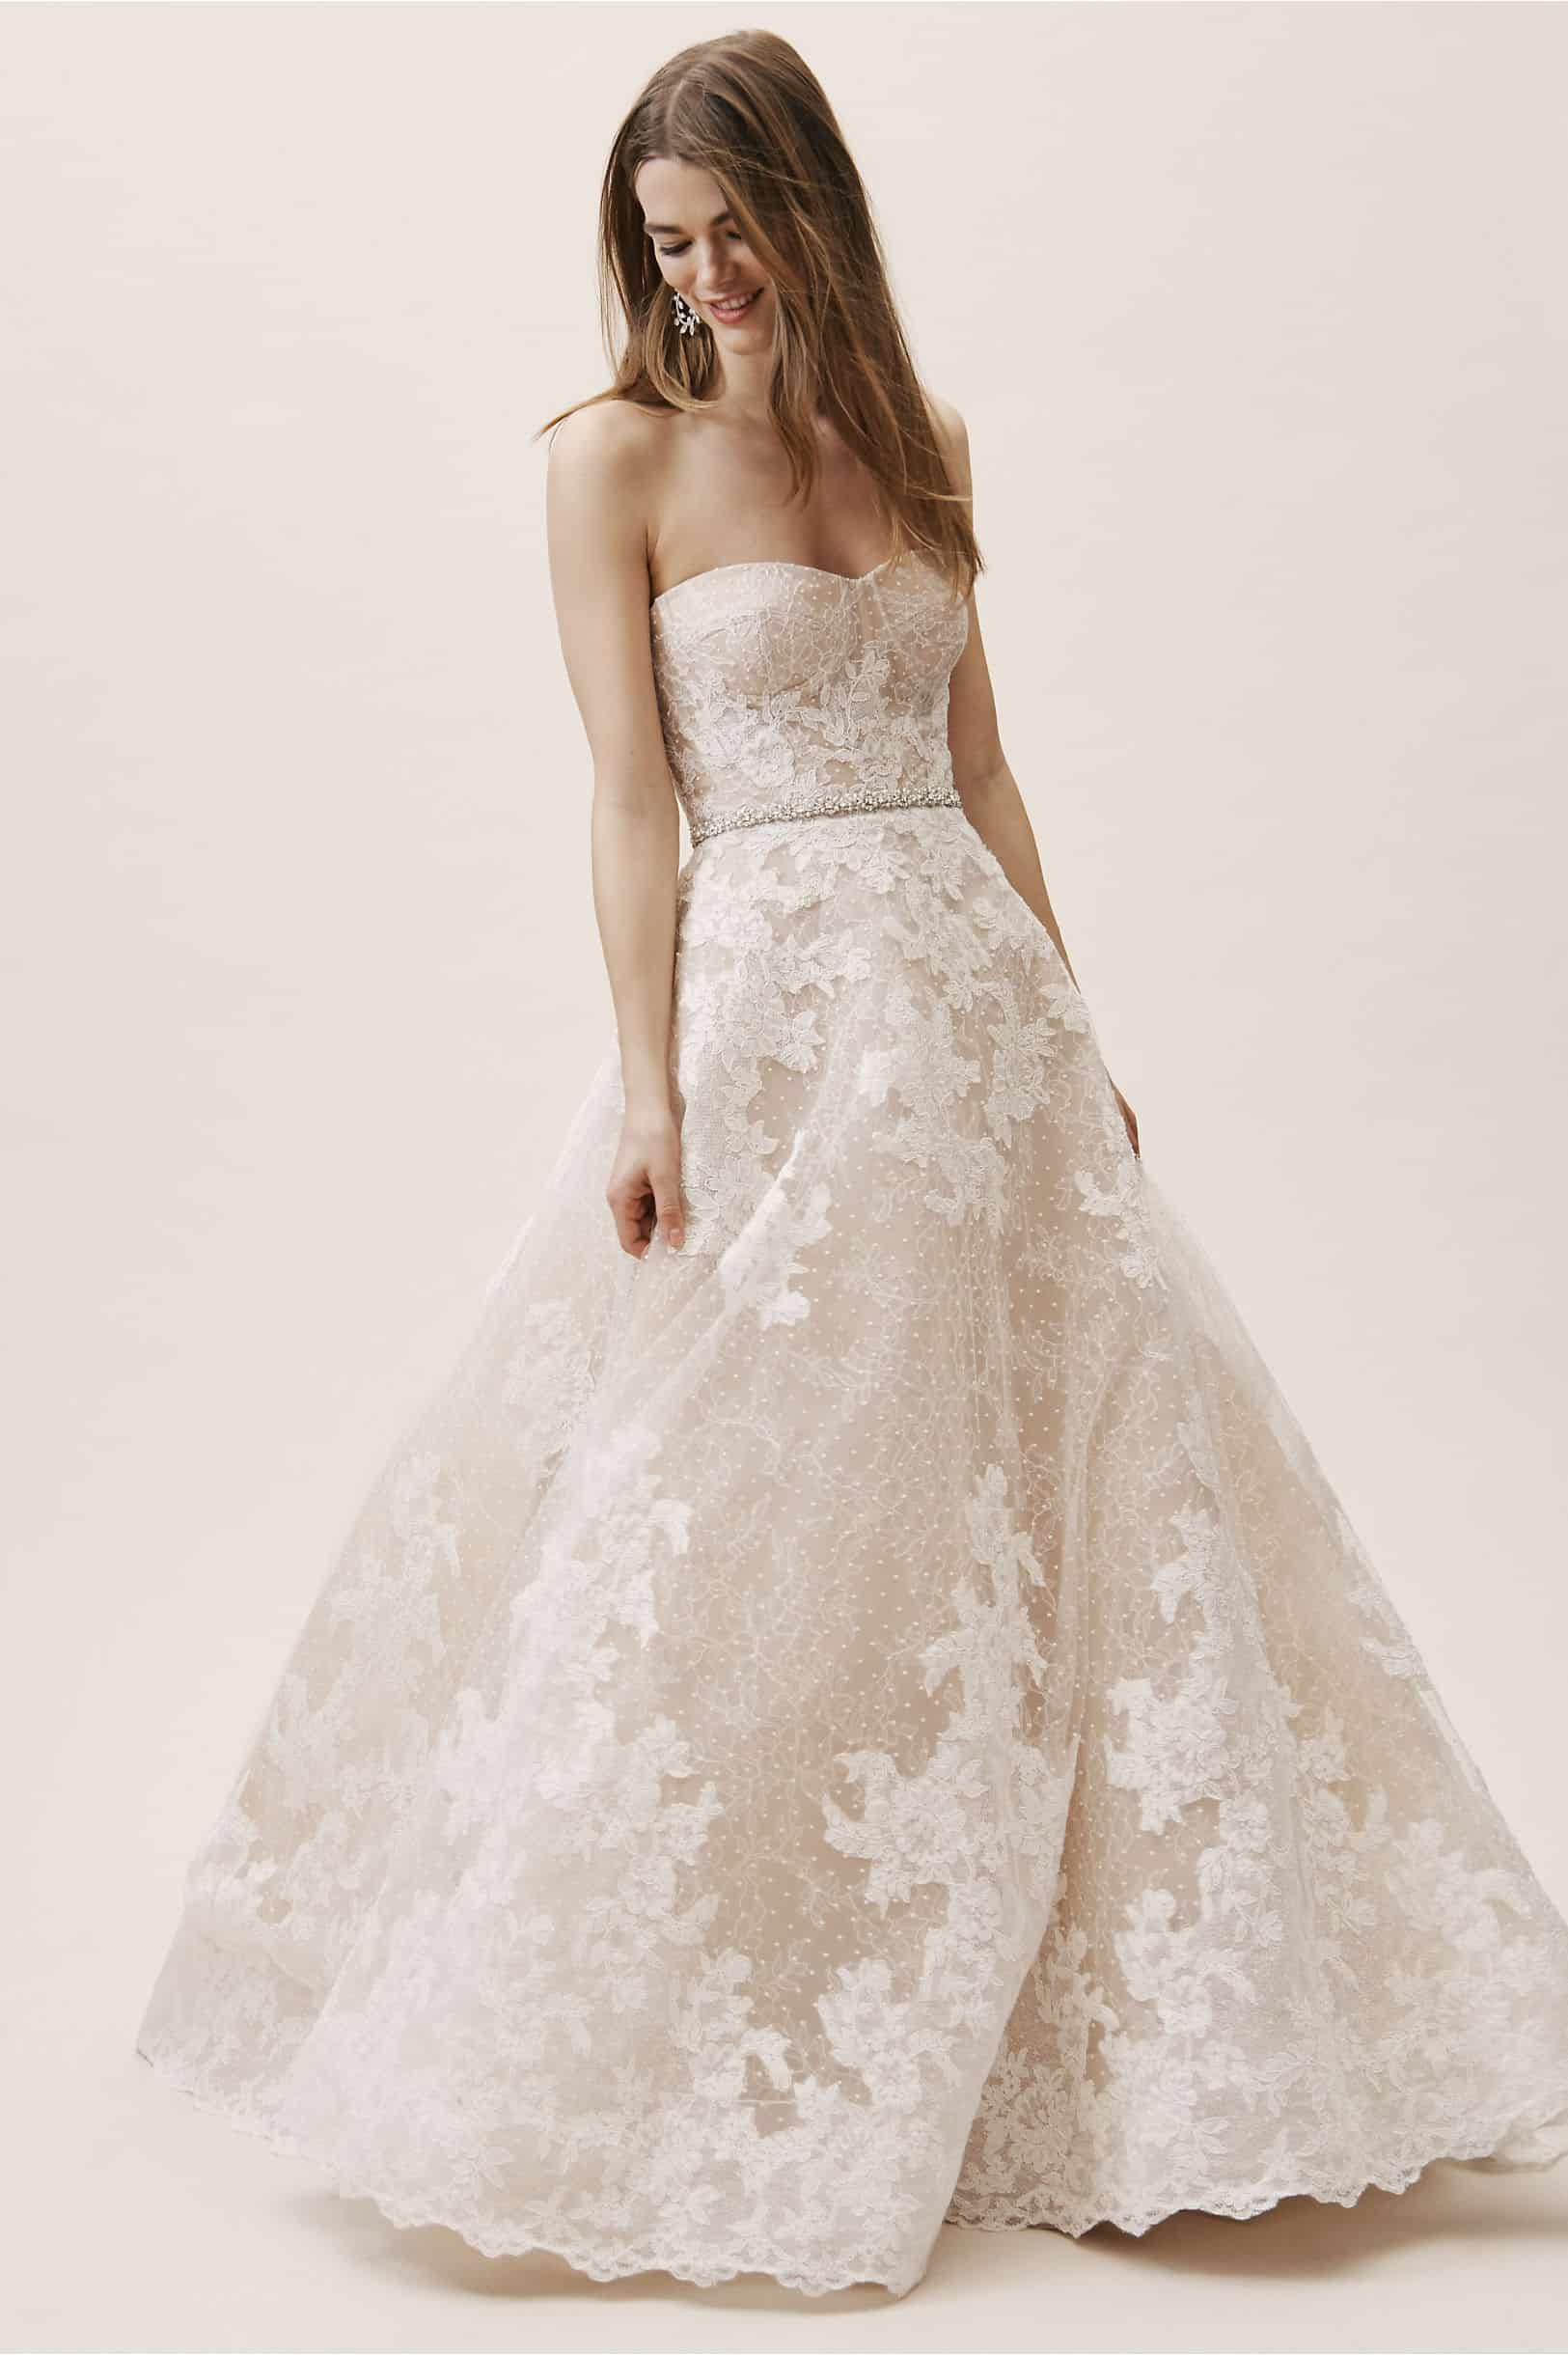 Nude Bridal Gown Strapless Wedding Dress Chantilly Lace Swiss Dot Tulle Geneva Gown BHLDN Watters